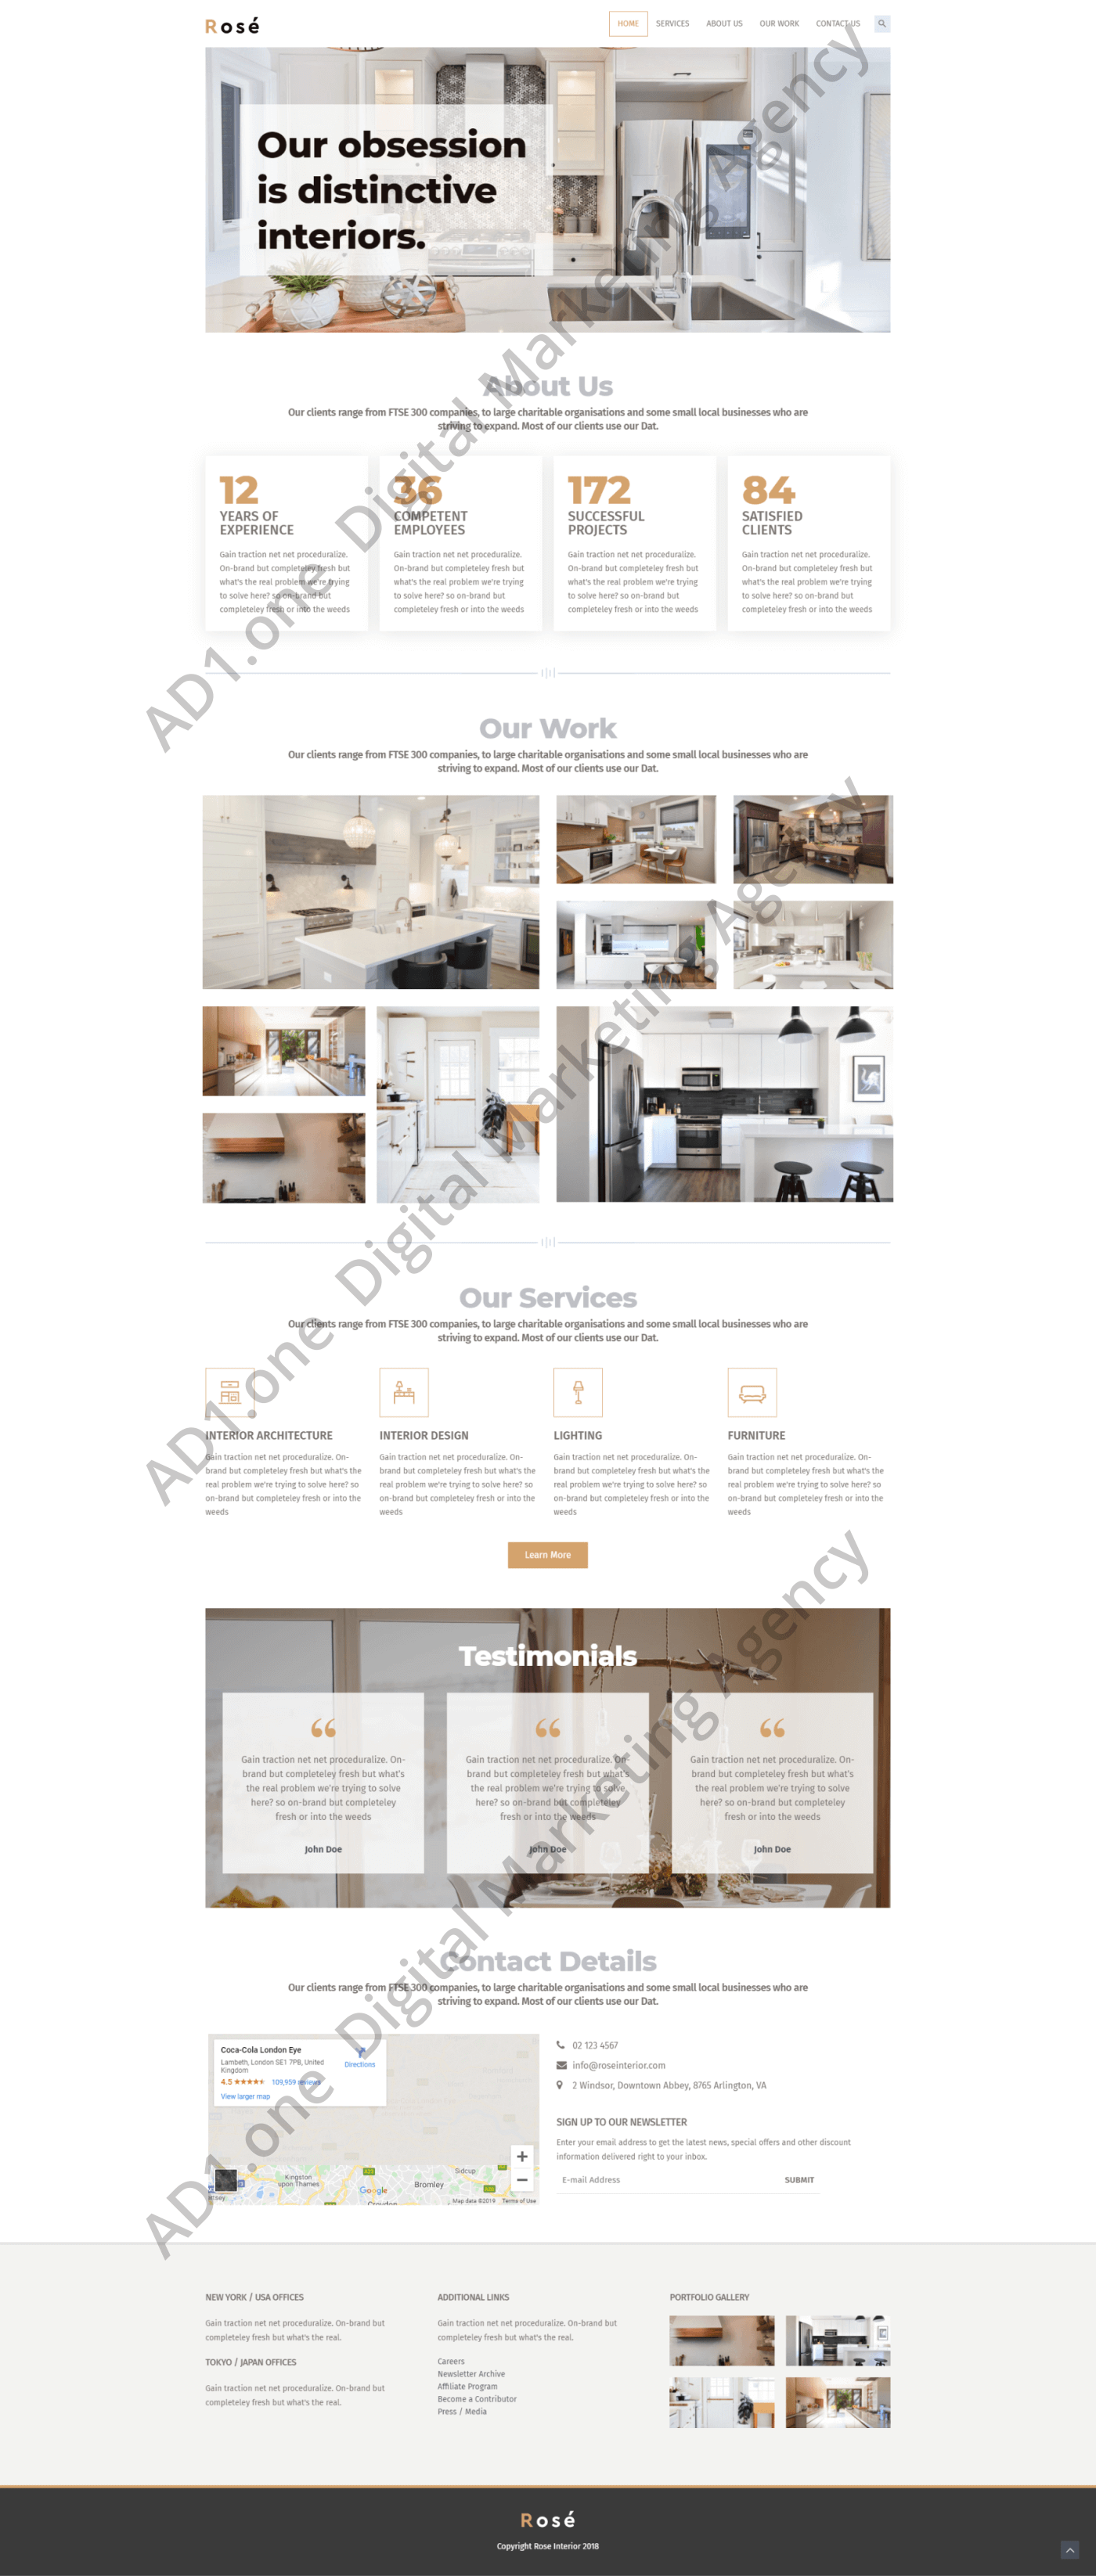 Architect- ad1 agency website desing project